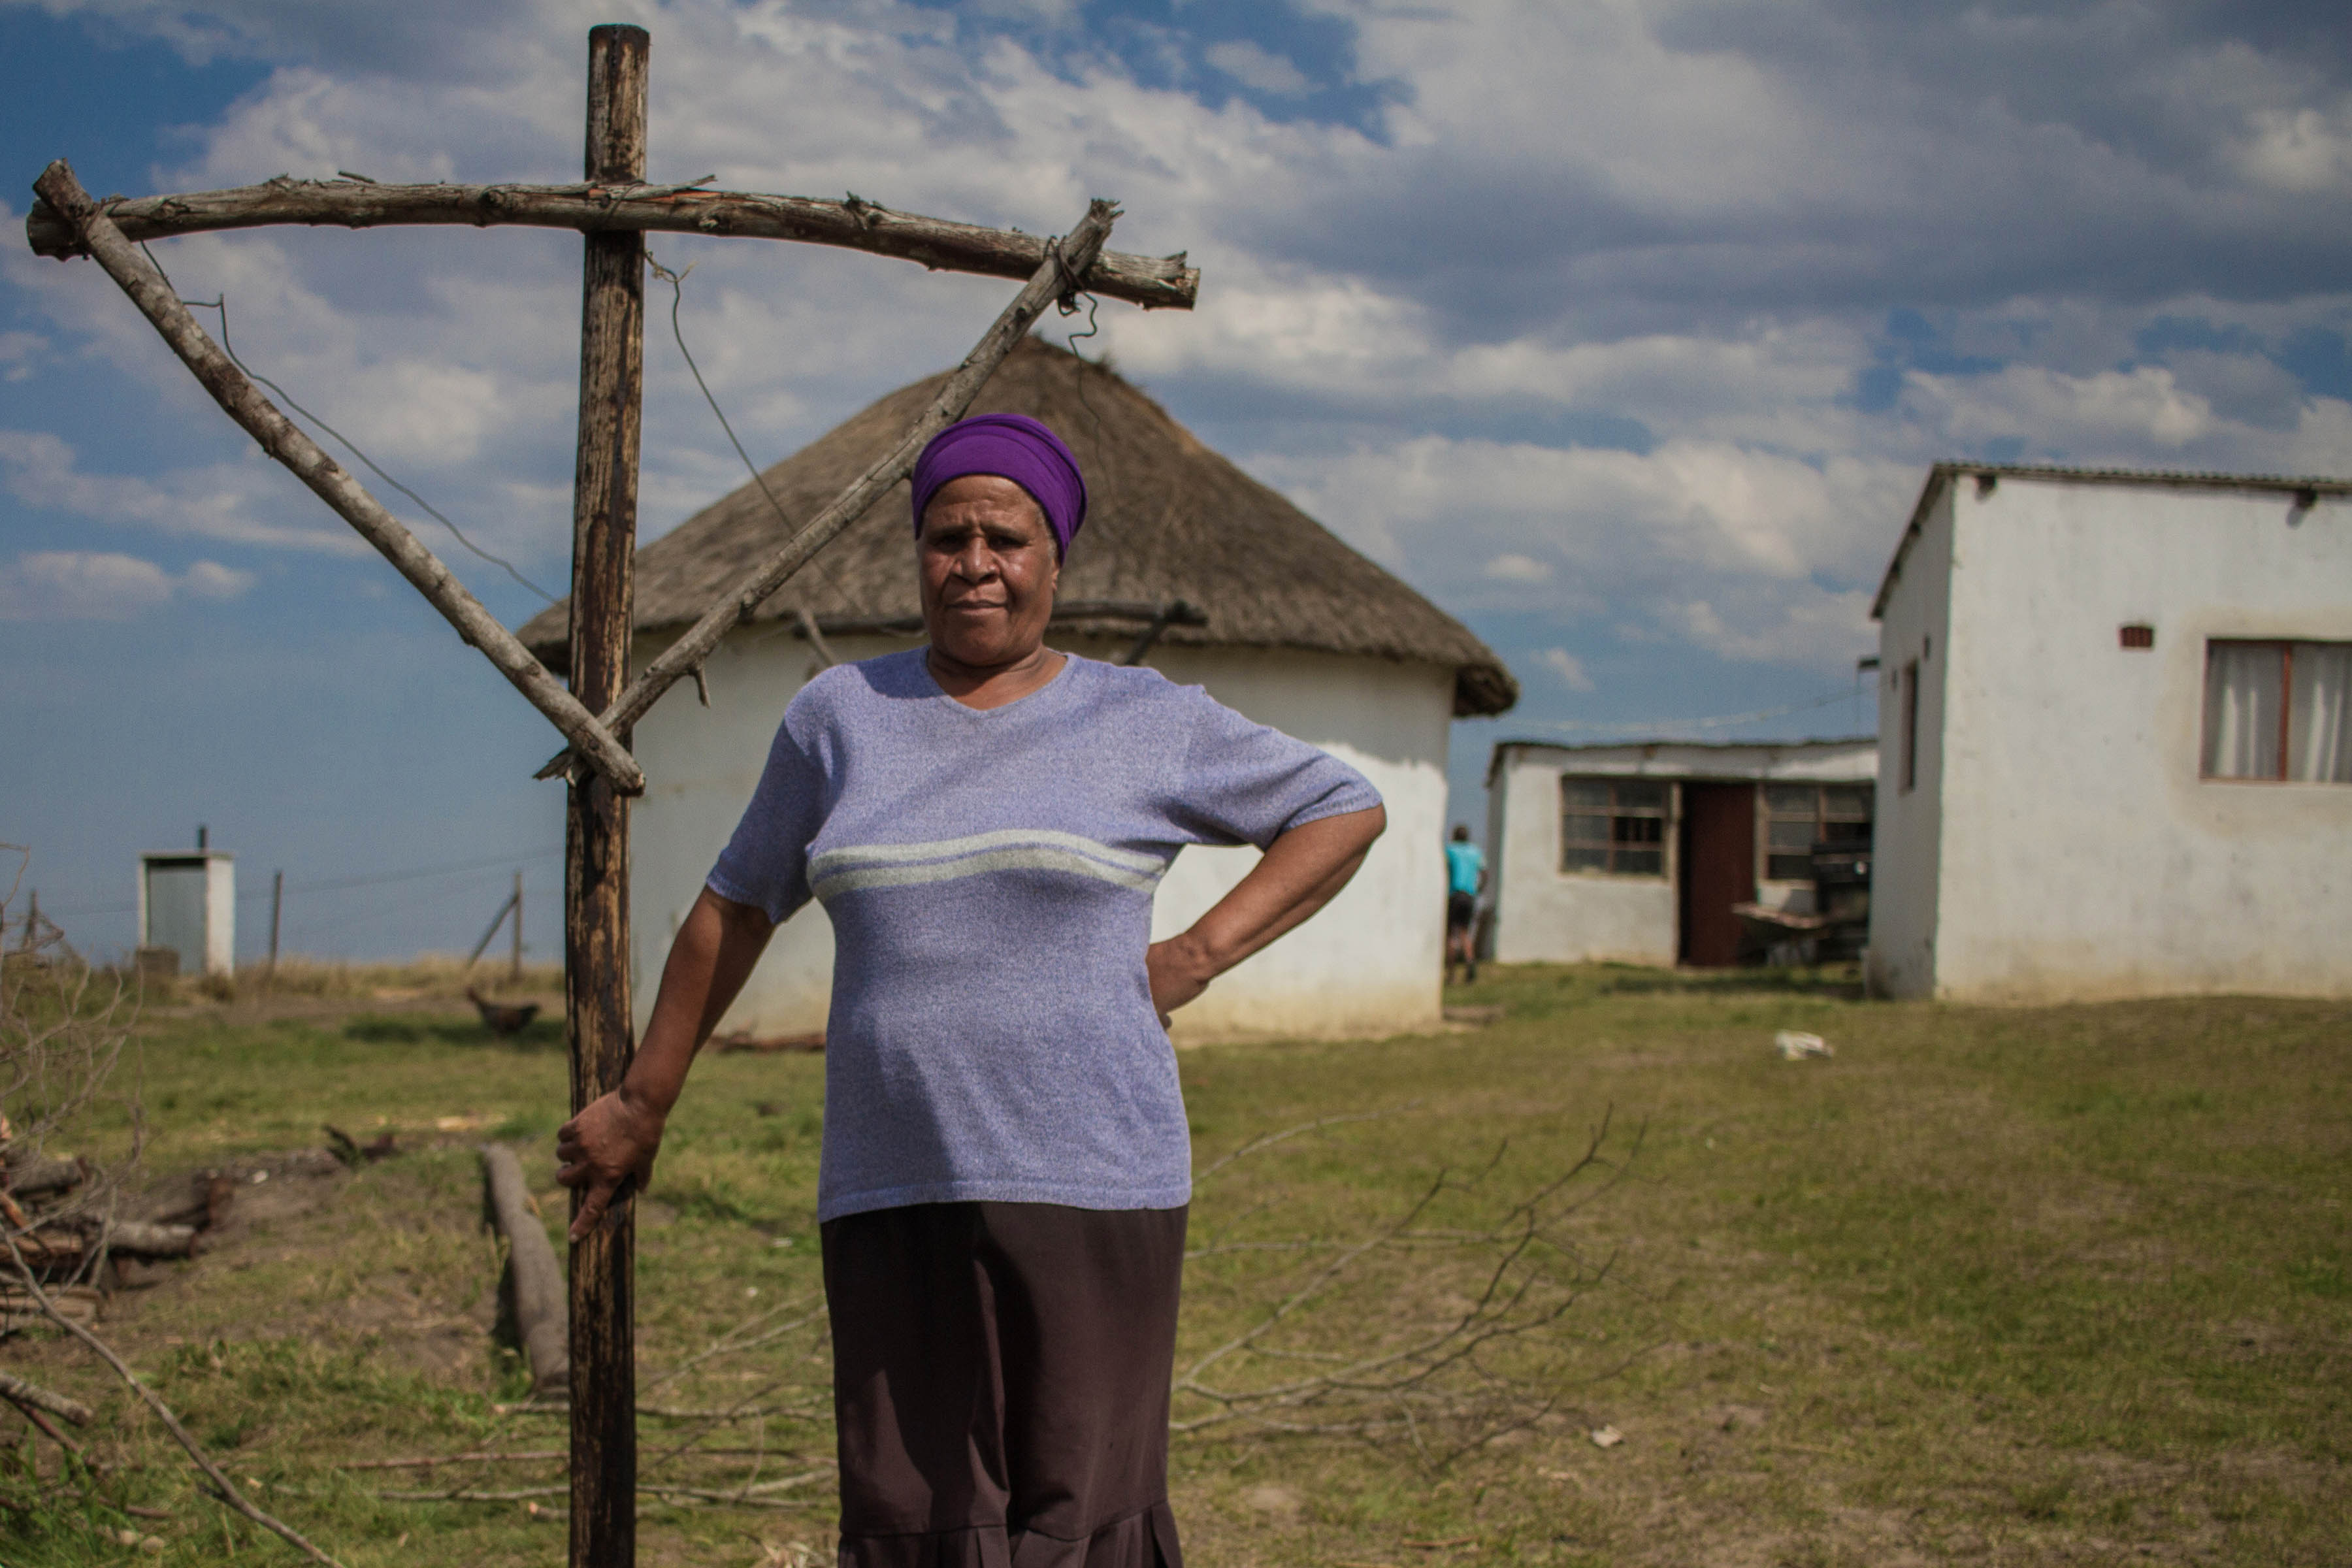 3 October 2019: Britic Mthembu is a resident of the village, which falls under ward 35 and is made up of a combination of private land and land administered by the Ingonyama Trust.